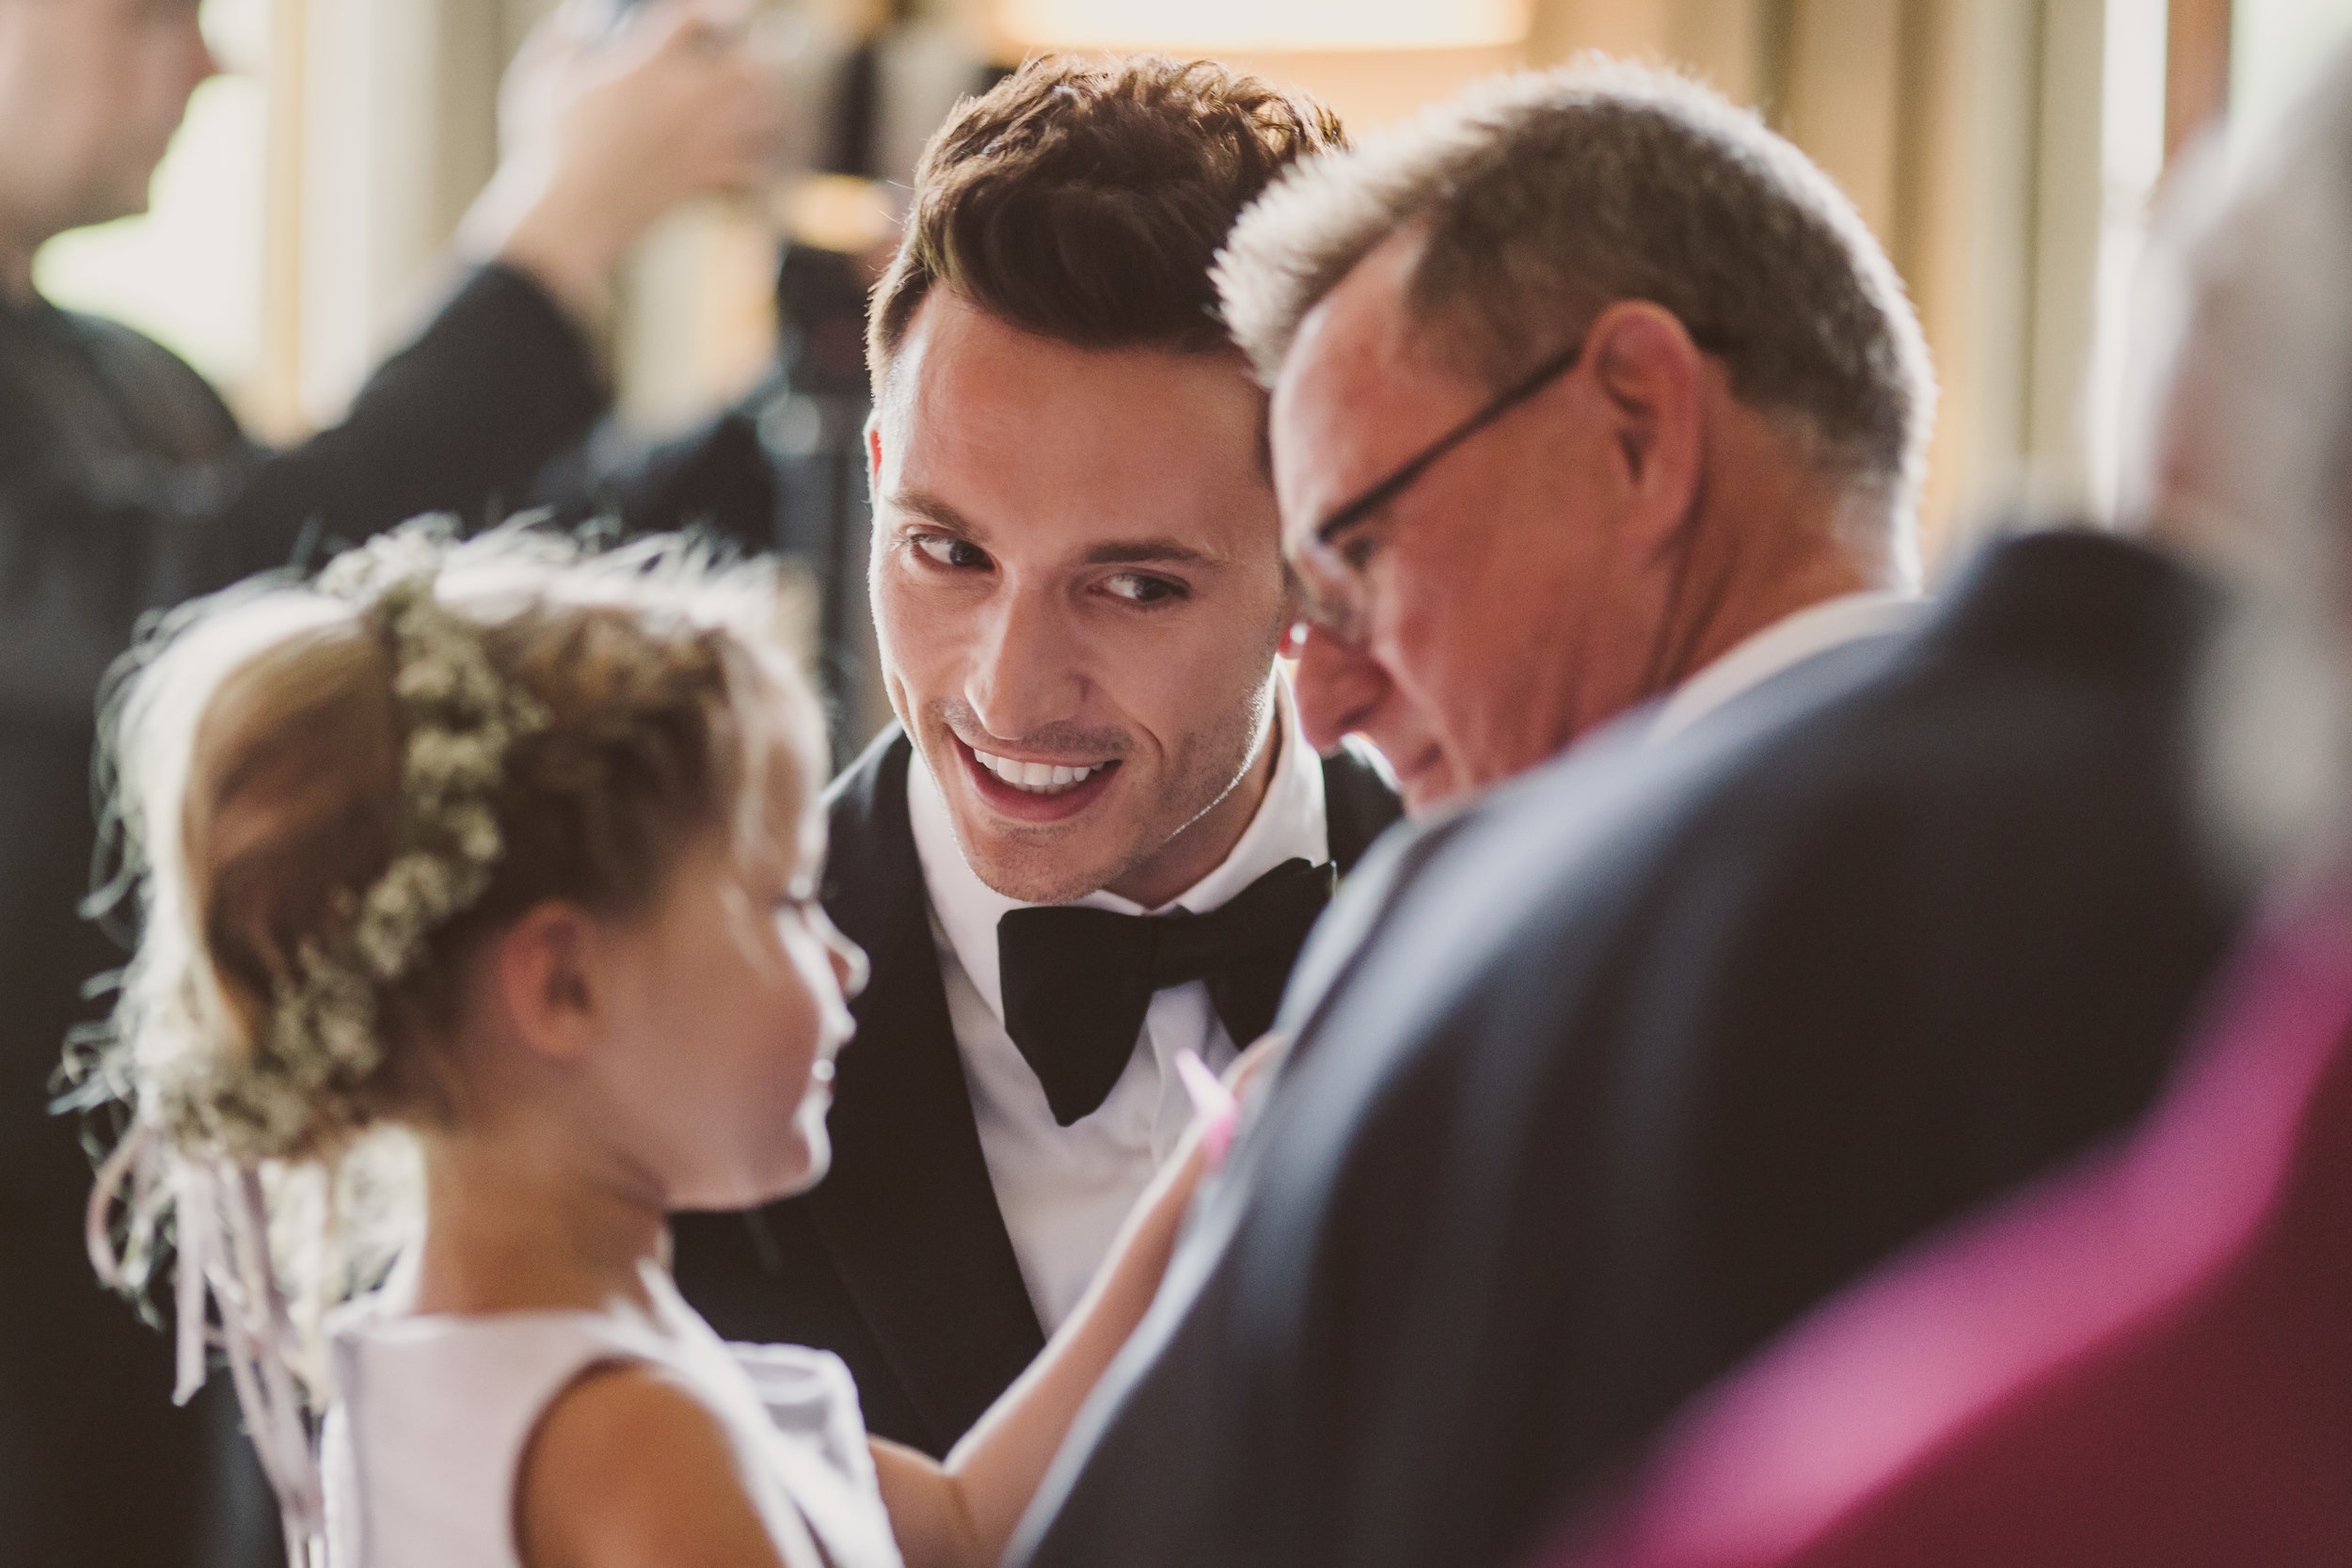 mr-theodore_same-sex-wedding15.jpg